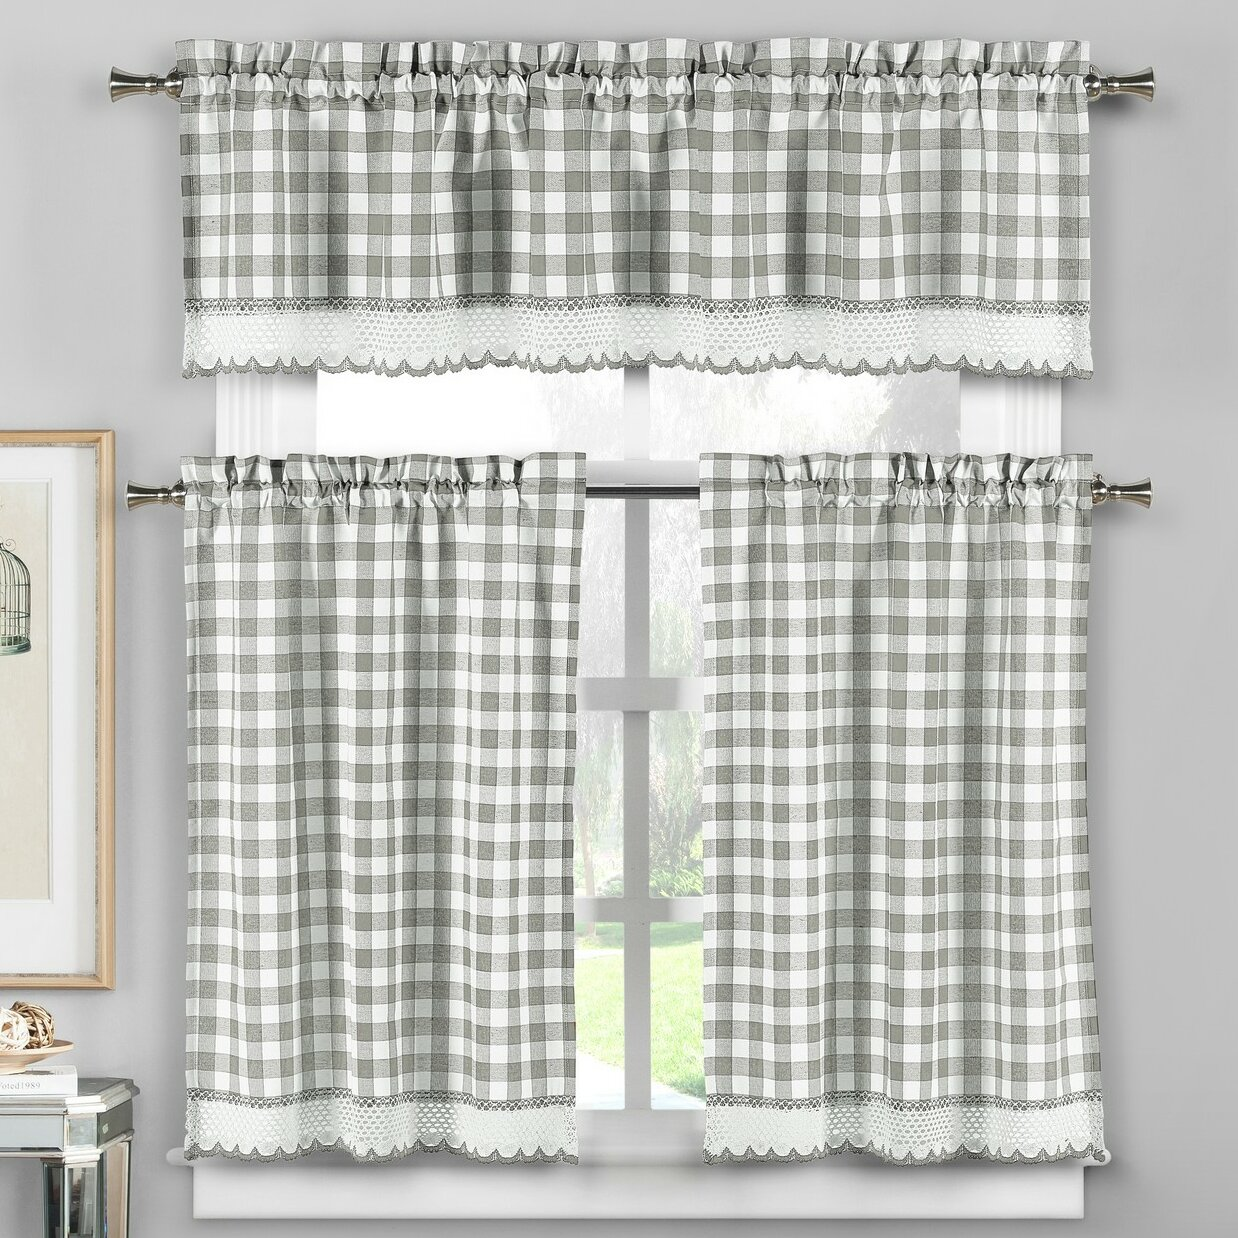 Loon Peak Cassia 3 Piece Crochet Kitchen Curtain Set Reviews Wayfair